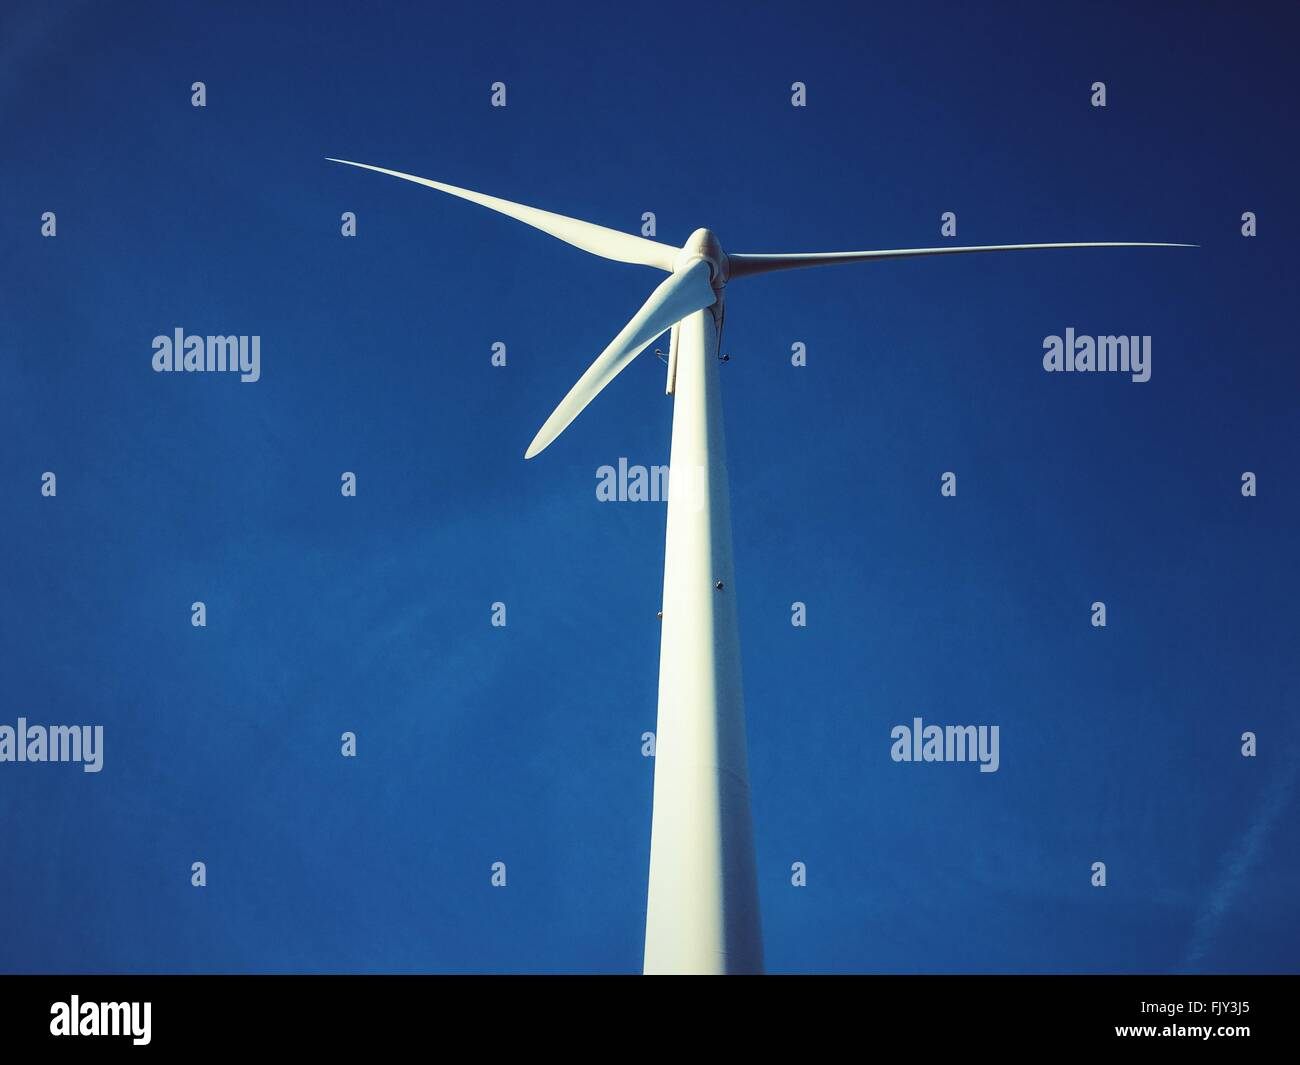 Low Angle View Of Wind Turbine Against Blue Sky - Stock Image